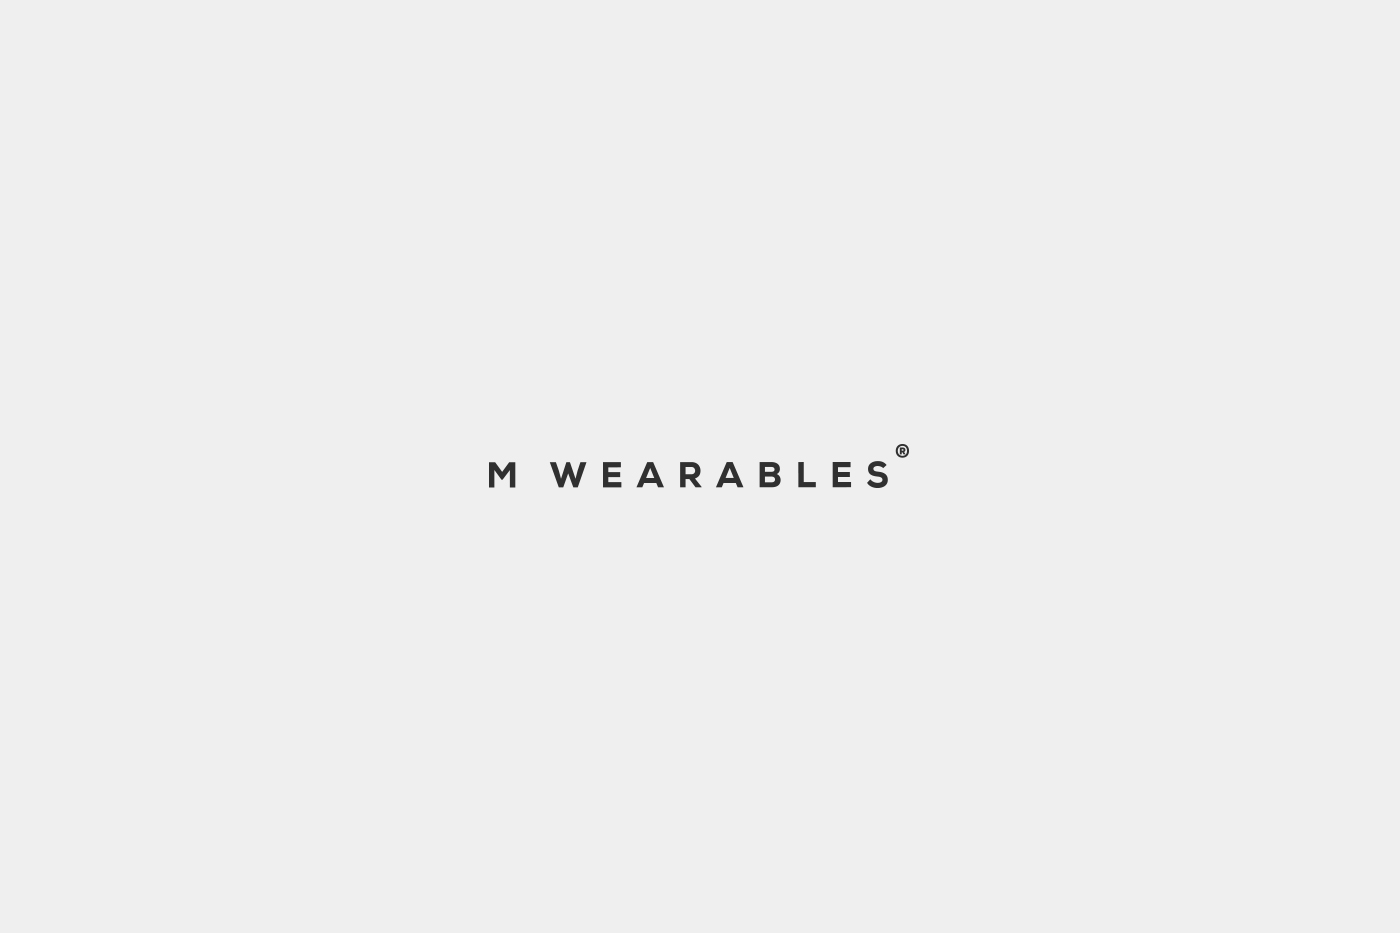 m-wearables-case-study-00.jpg